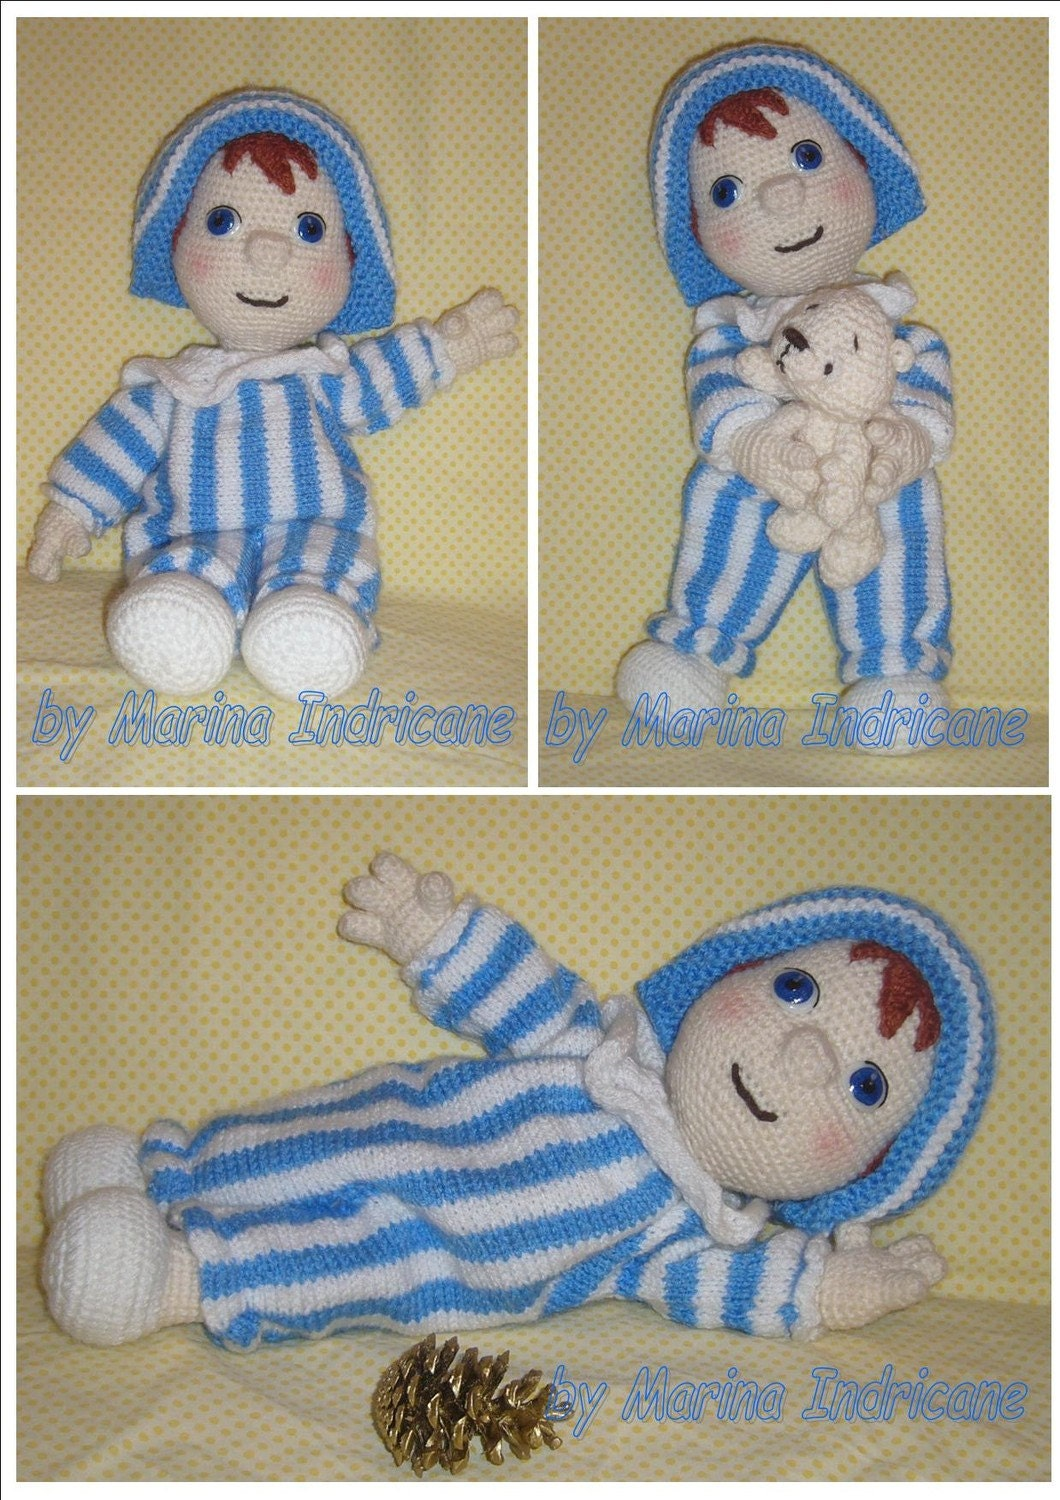 Knitting Patterns For Toy Dolls : Andy Pandy doll toy crochet knitted pattern PDF